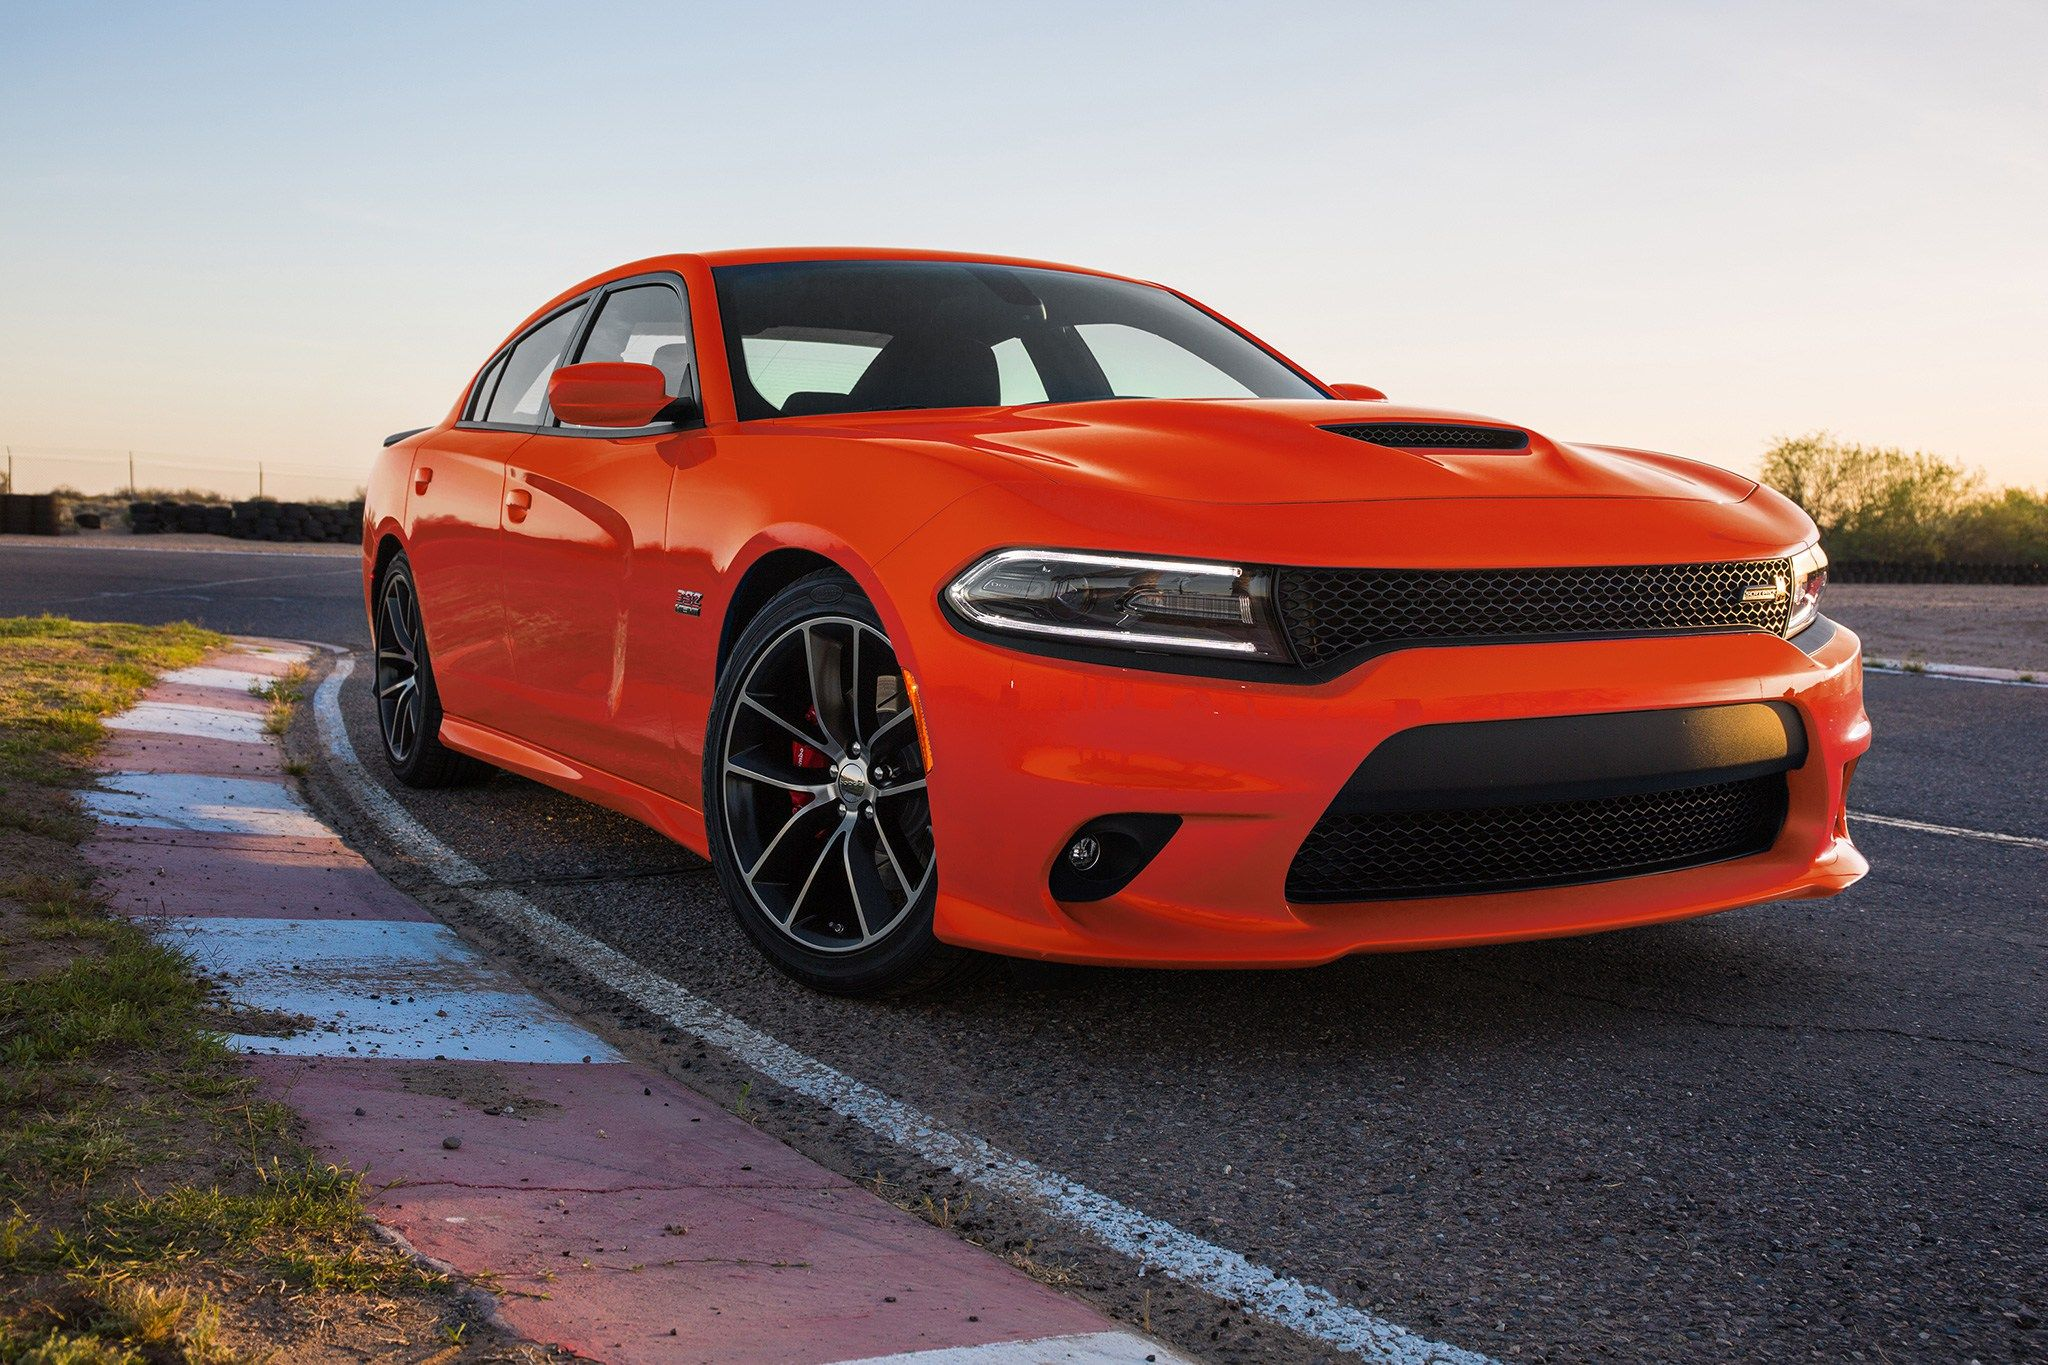 New 2020 Dodge Charger Concept Specs And Price Rumor Car Rumor